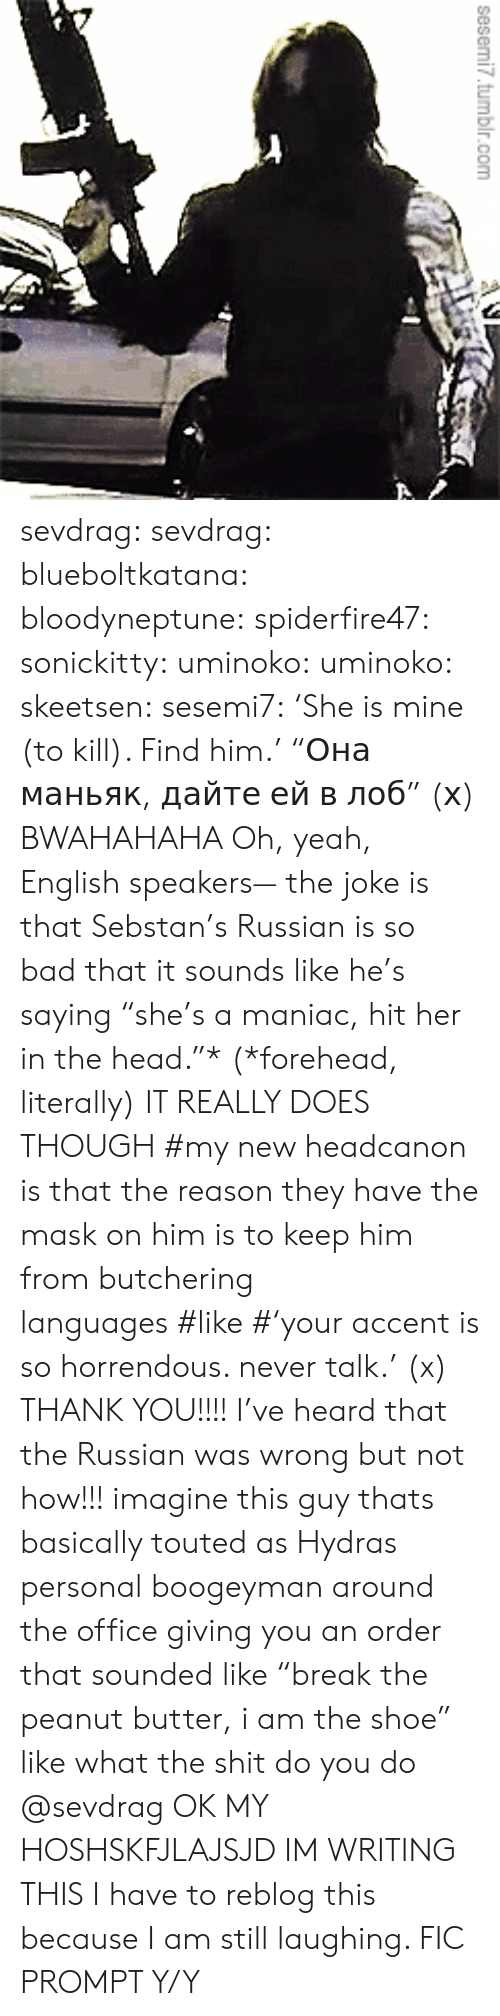 """What The Shit: sesemi7.tumbir.com  1 sevdrag: sevdrag:   blueboltkatana:   bloodyneptune:  spiderfire47:  sonickitty:   uminoko:  uminoko:  skeetsen:  sesemi7:  'She is mine (to kill). Find him.'  """"Она маньяк, дайте ей в лоб"""" (х)  BWAHAHAHA  Oh, yeah, English speakers— the joke is that Sebstan's Russian is so bad that it sounds like he's saying """"she's a maniac, hit her in the head.""""* (*forehead, literally) IT REALLY DOES THOUGH   #my new headcanon is that the reason they have the mask on him is to keep him from butchering languages#like#'your accent is so horrendous. never talk.'(x)   THANK YOU!!!! I've heard that the Russian was wrong but not how!!!  imagine this guy thats basically touted as Hydras personal boogeyman around the office giving you an order that sounded like """"break the peanut butter, i am the shoe"""" like what the shit do you do   @sevdrag    OK MY HOSHSKFJLAJSJD  IM WRITING THIS   I have to reblog this because I am still laughing. FIC PROMPT Y/Y"""